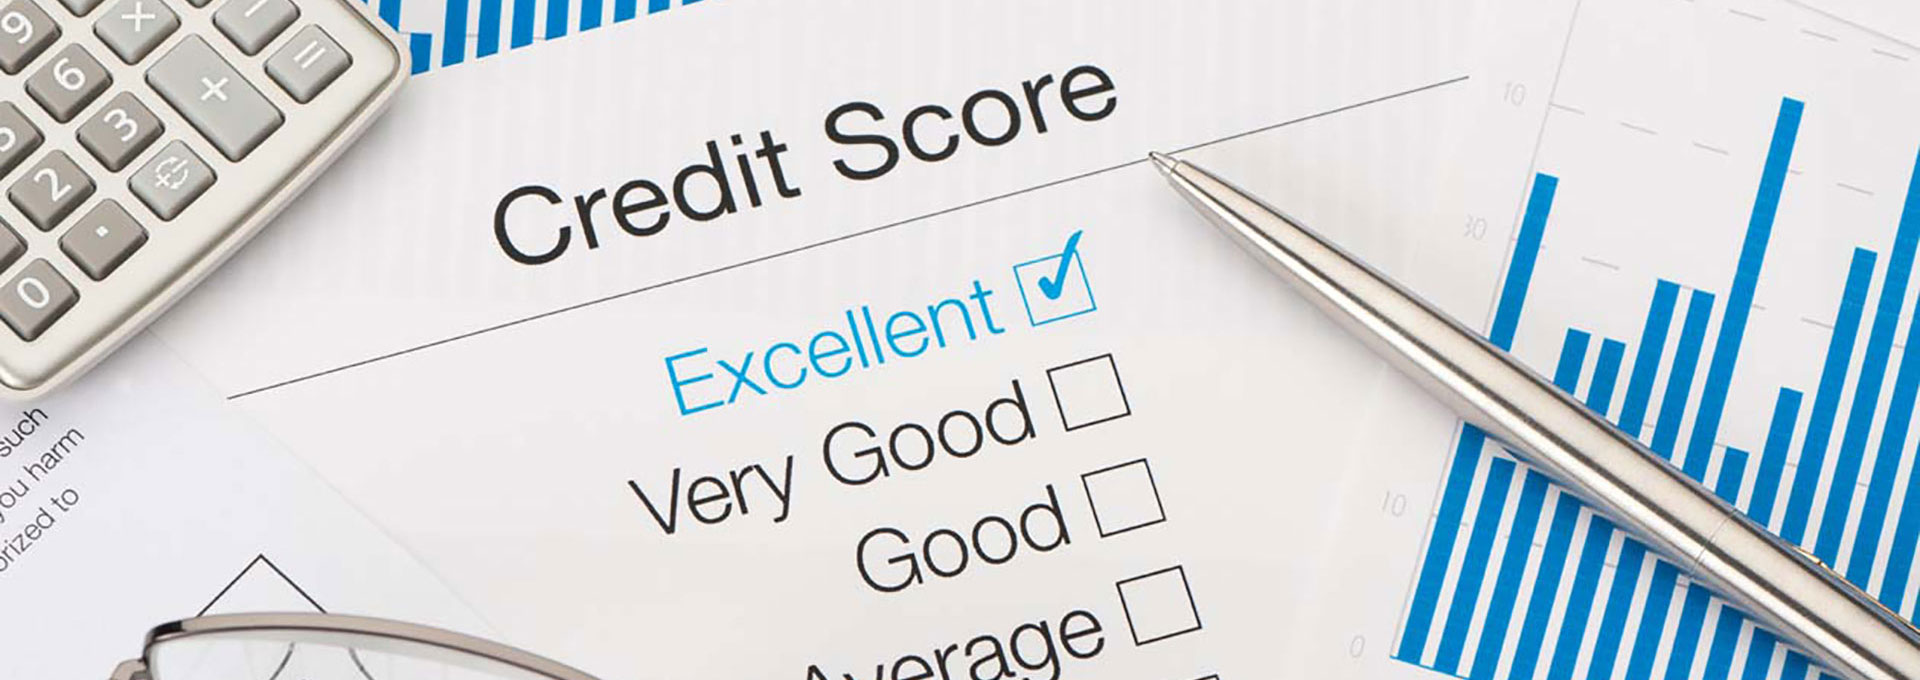 Why is an Equifax Credit Score so important?